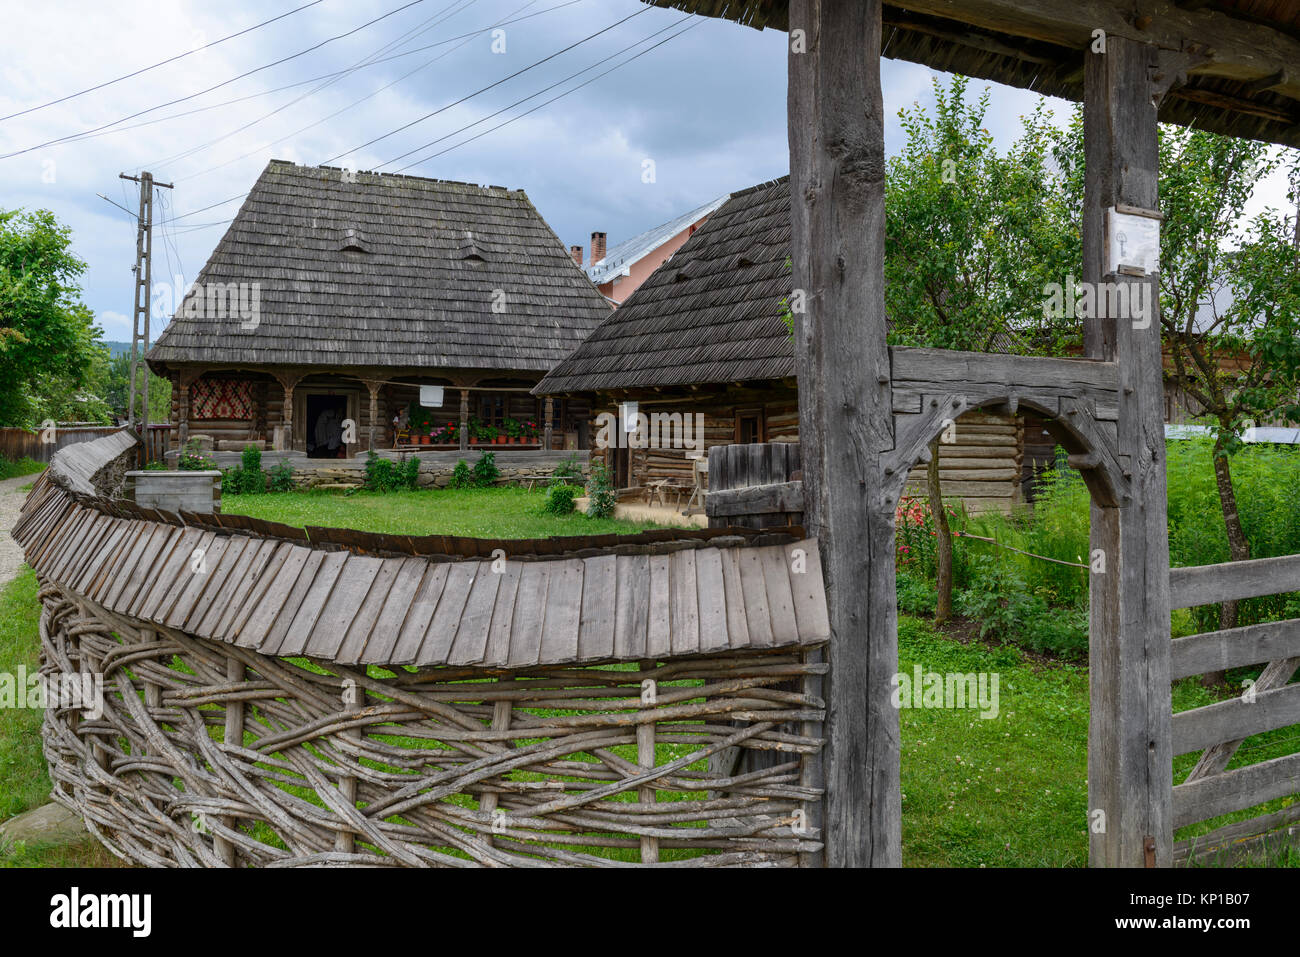 The private ethnographic museum in the courtyard of the Pleş family. Ieud, Maramures, Romania. - Stock Image